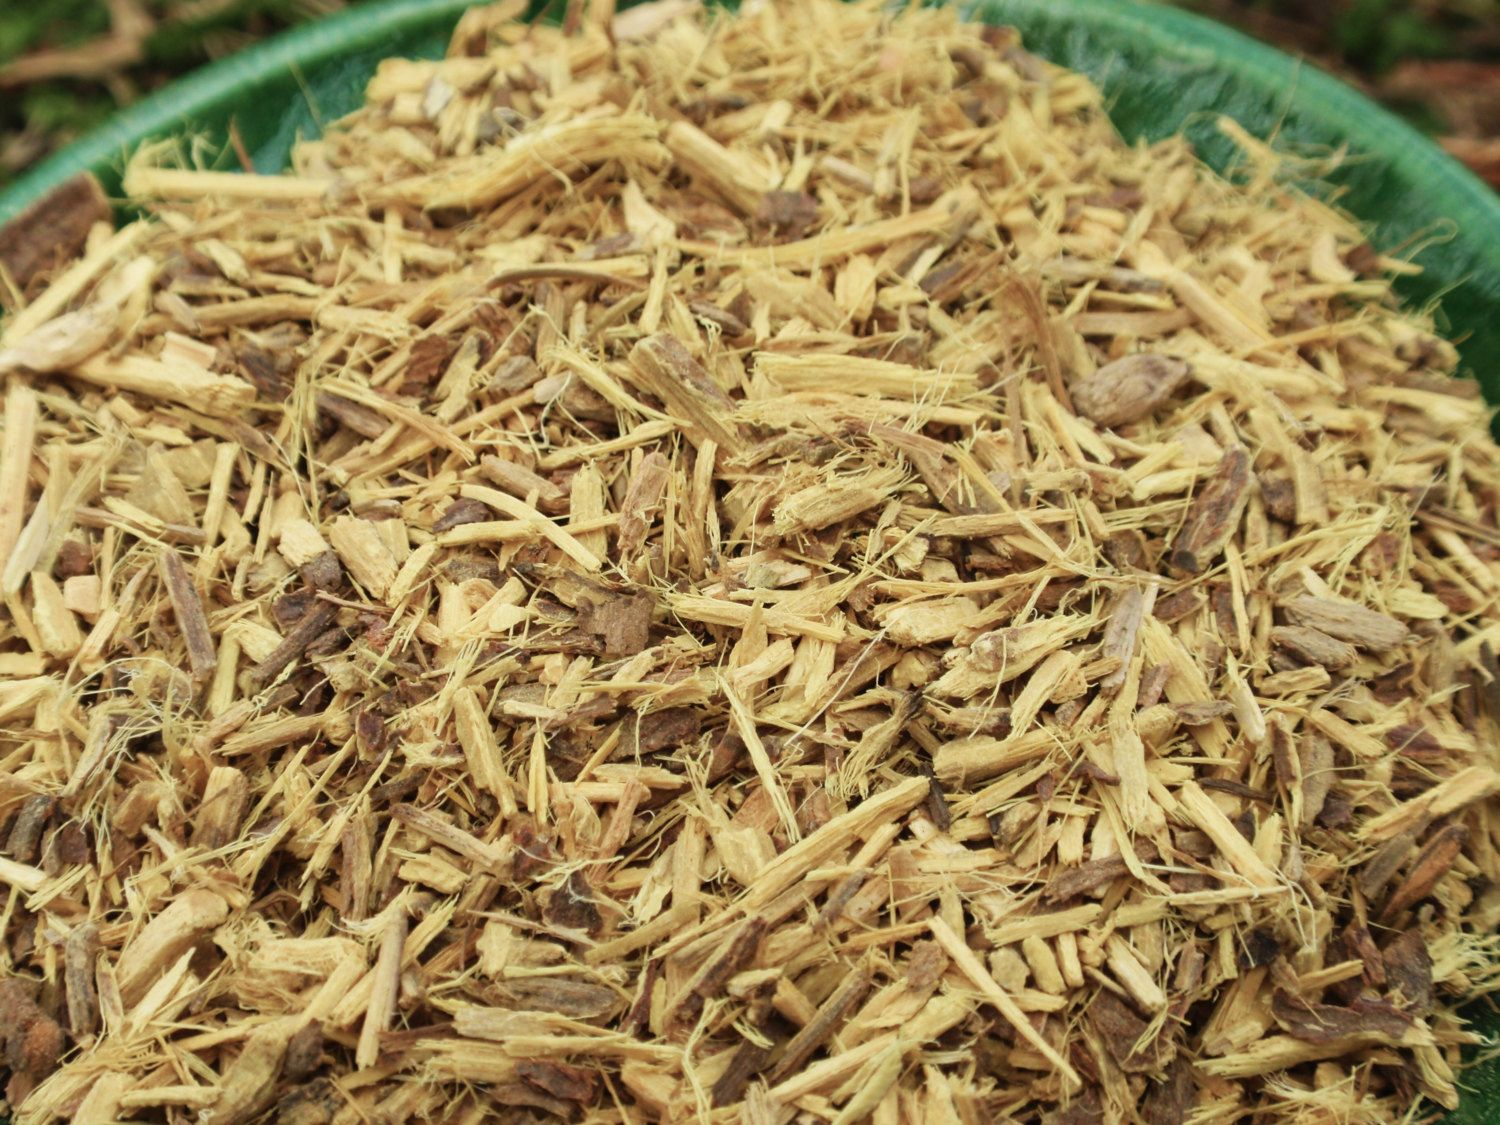 Liqourice used for centuries to detoxify and to reduce inflammation